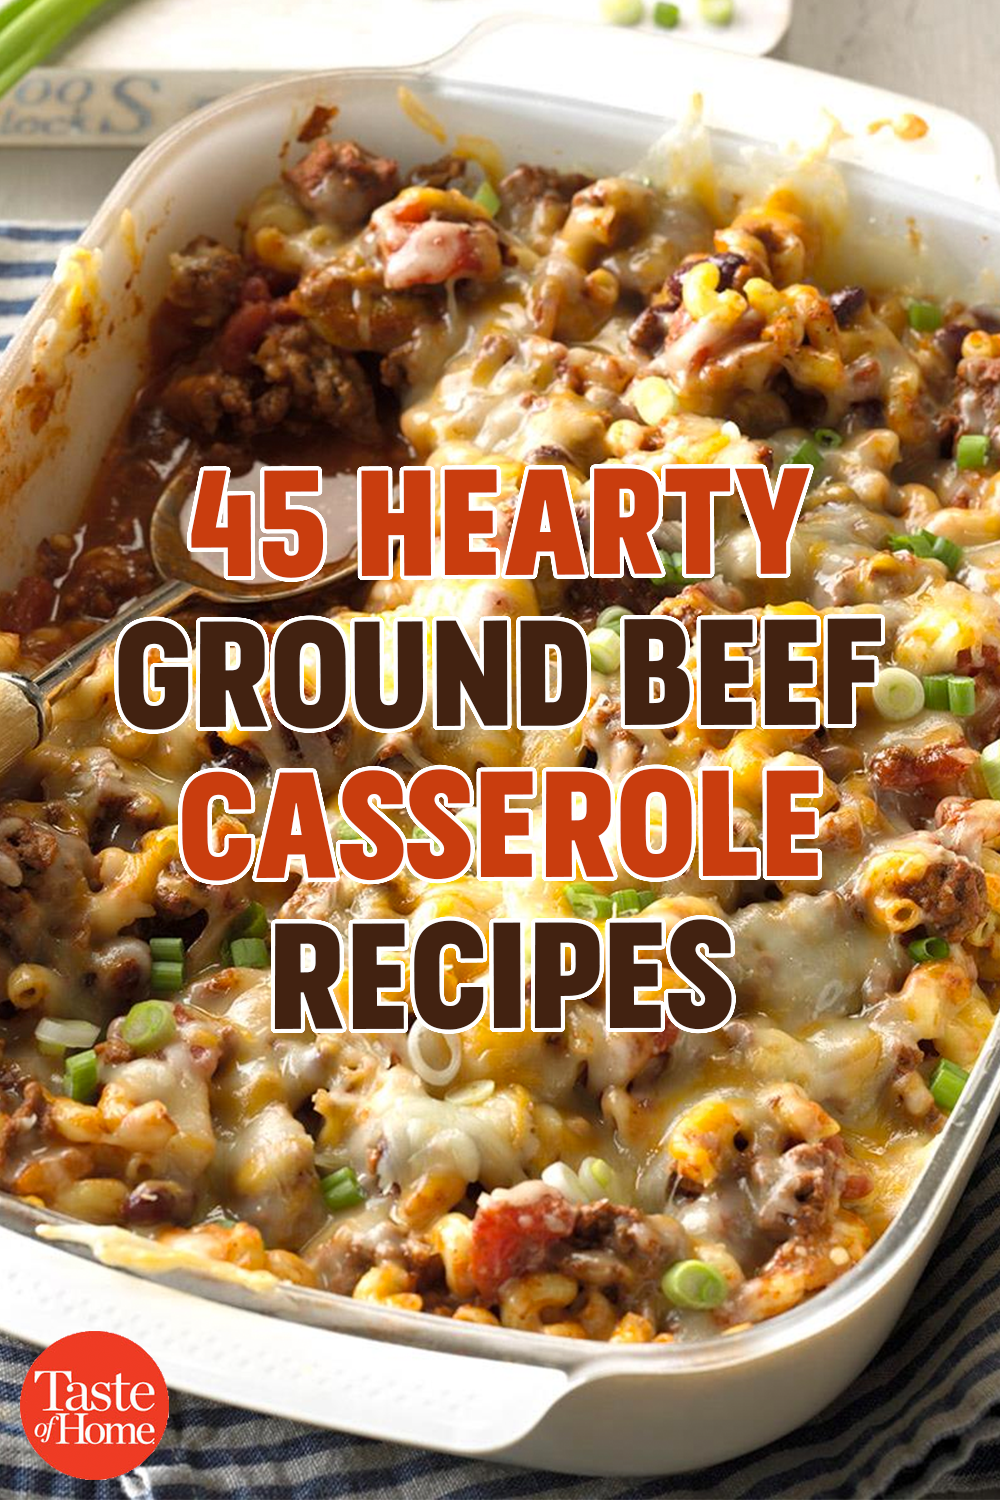 45 Hearty Ground Beef Casseroles Ground Beef Casserole Recipes Beef Casserole Recipes Beef Recipes For Dinner